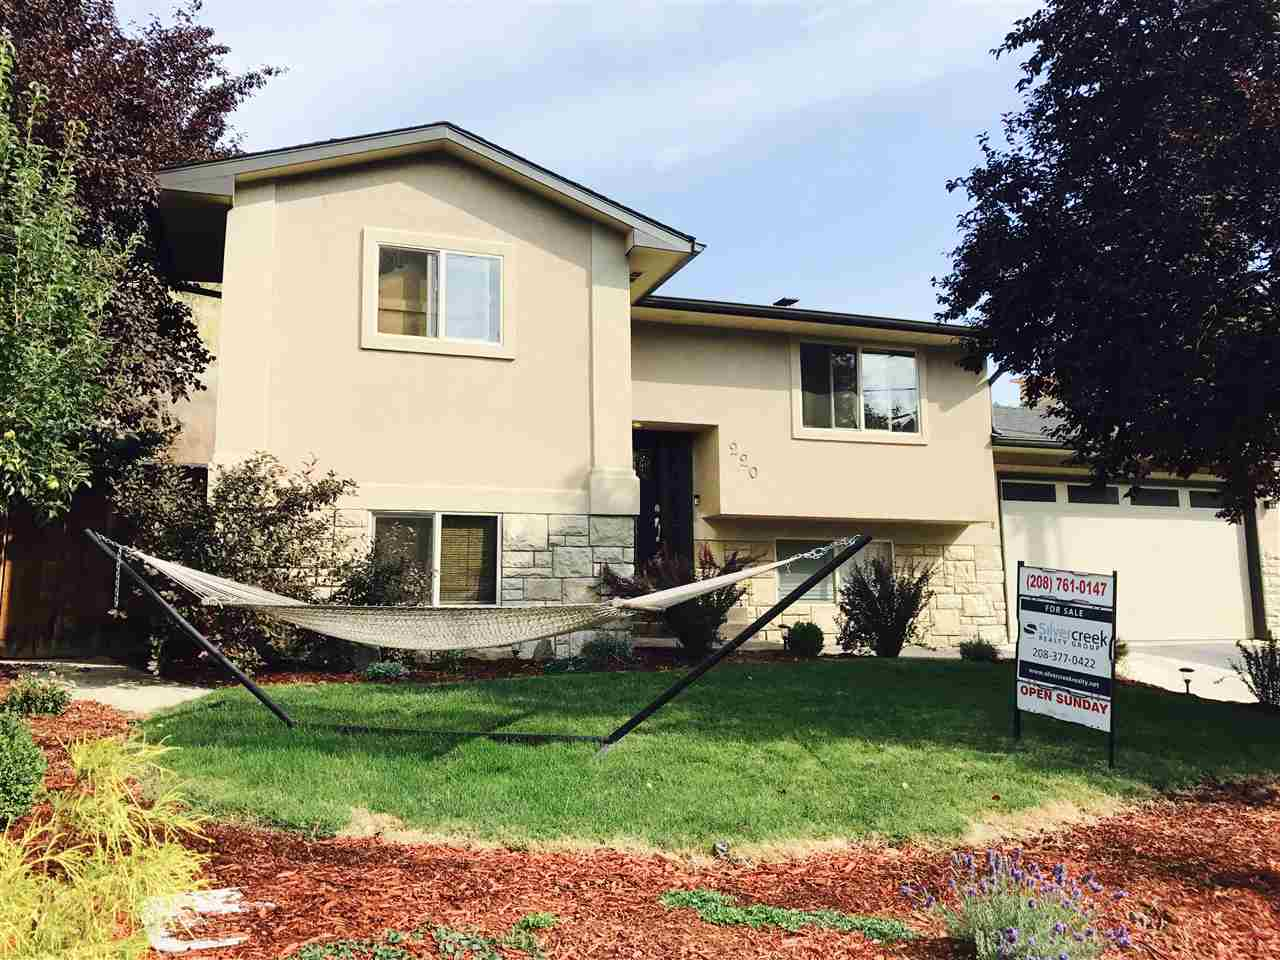 220 W Sherman, Boise, Idaho 83702, 3 Bedrooms, 2.5 Bathrooms, Rental For Rent, Price $2,300, 98670849